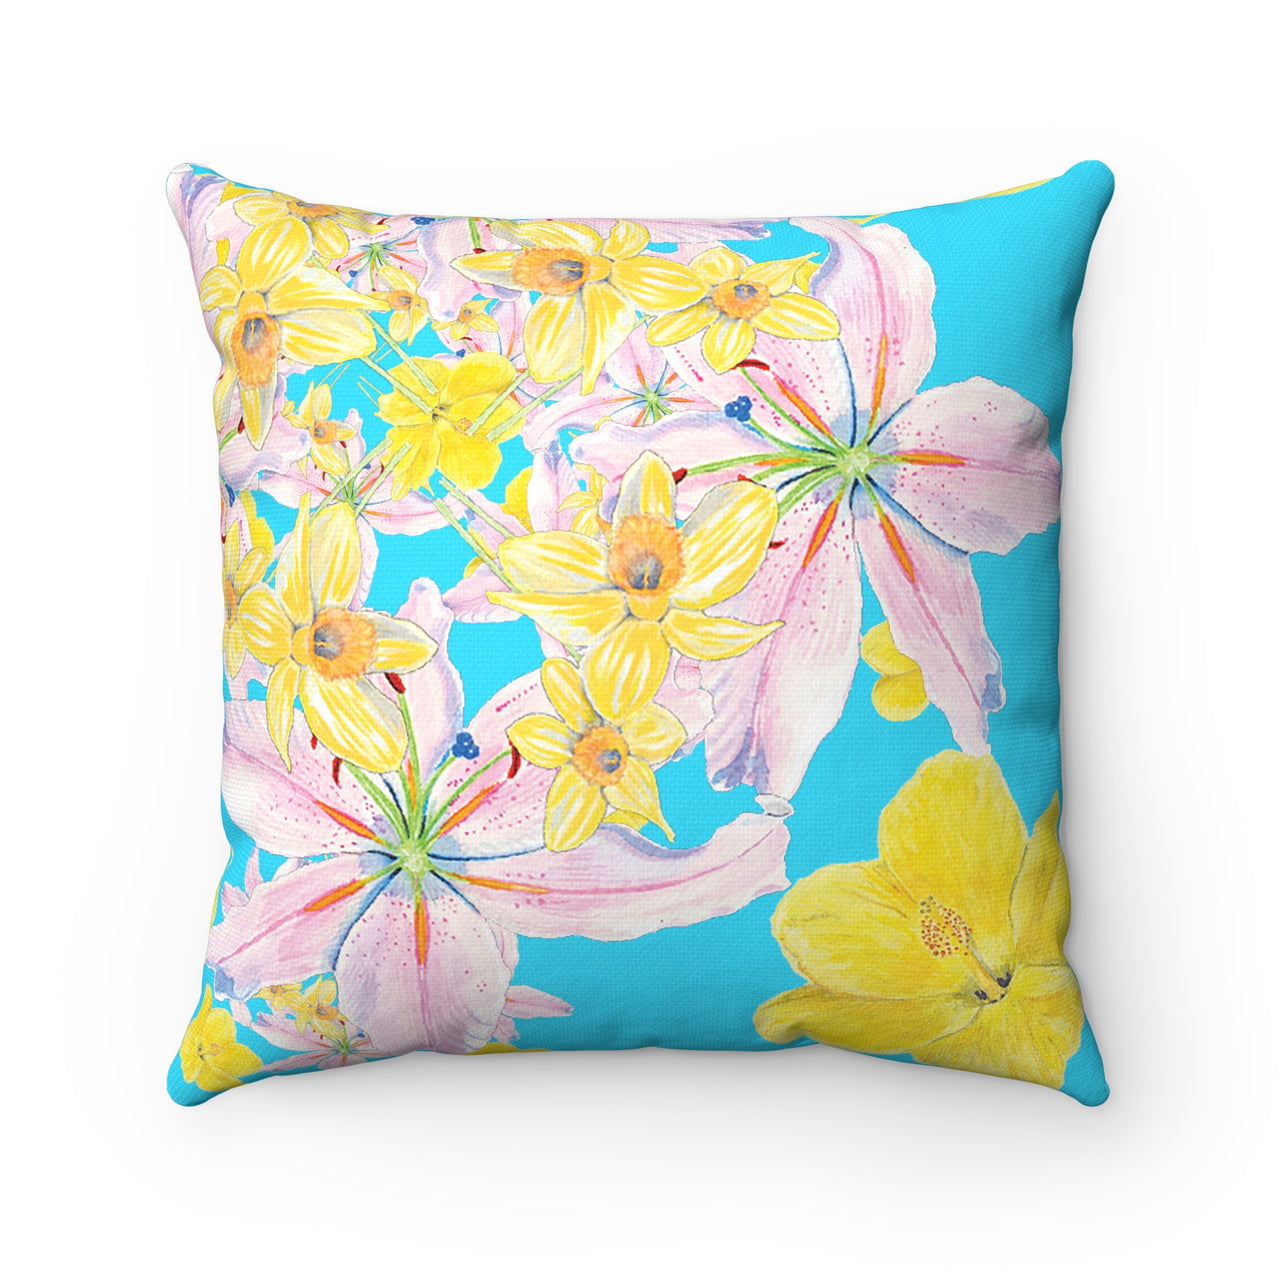 Pillow - Turquoise - Pink and Yellow Flower Square - Spun Polyester - Falling Leaf Card Co.